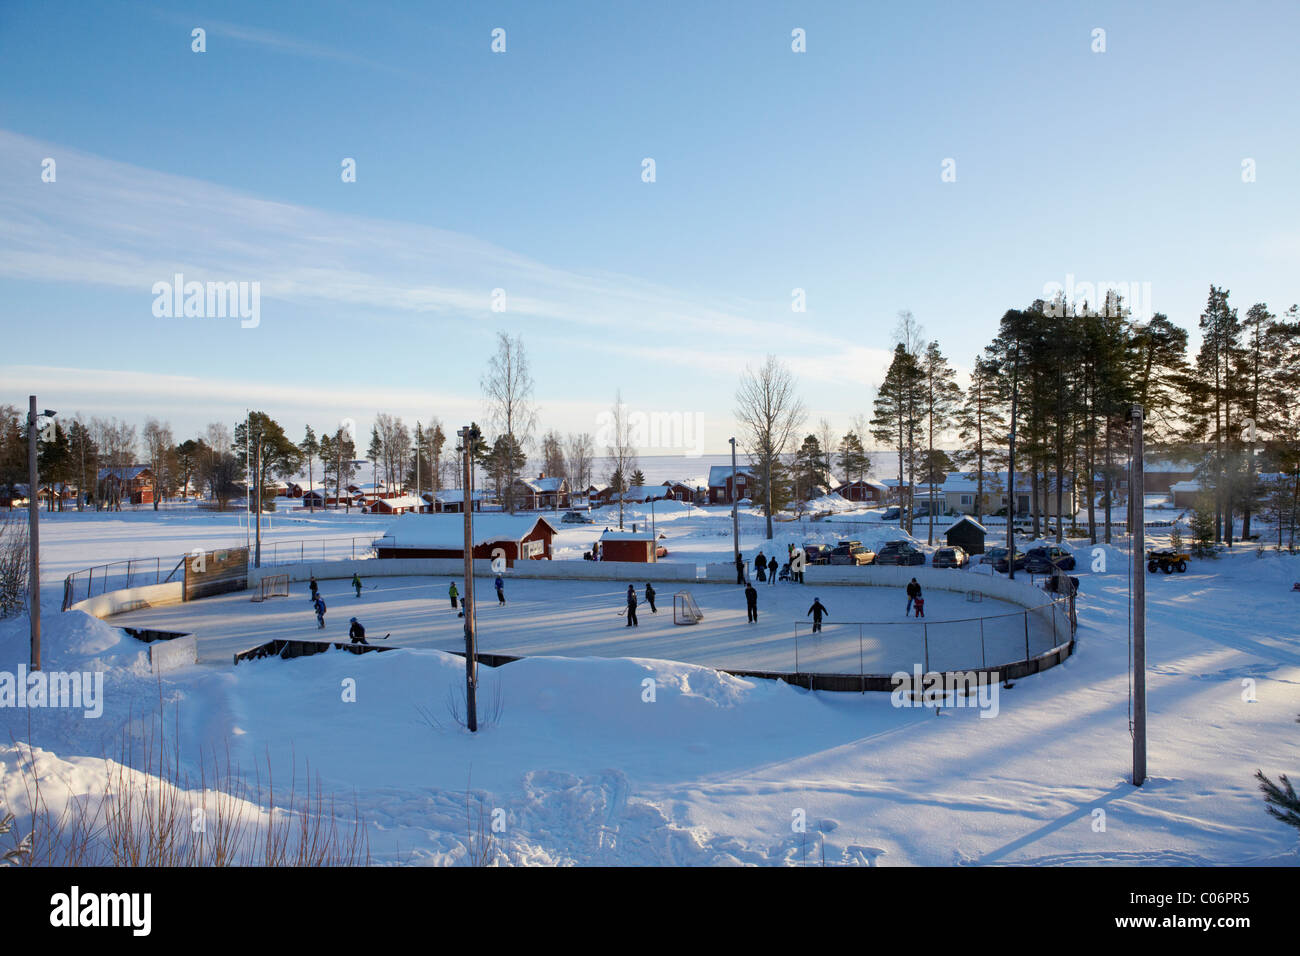 People ice-skating in outside ice rink in rural small town covered in snow - Stock Image